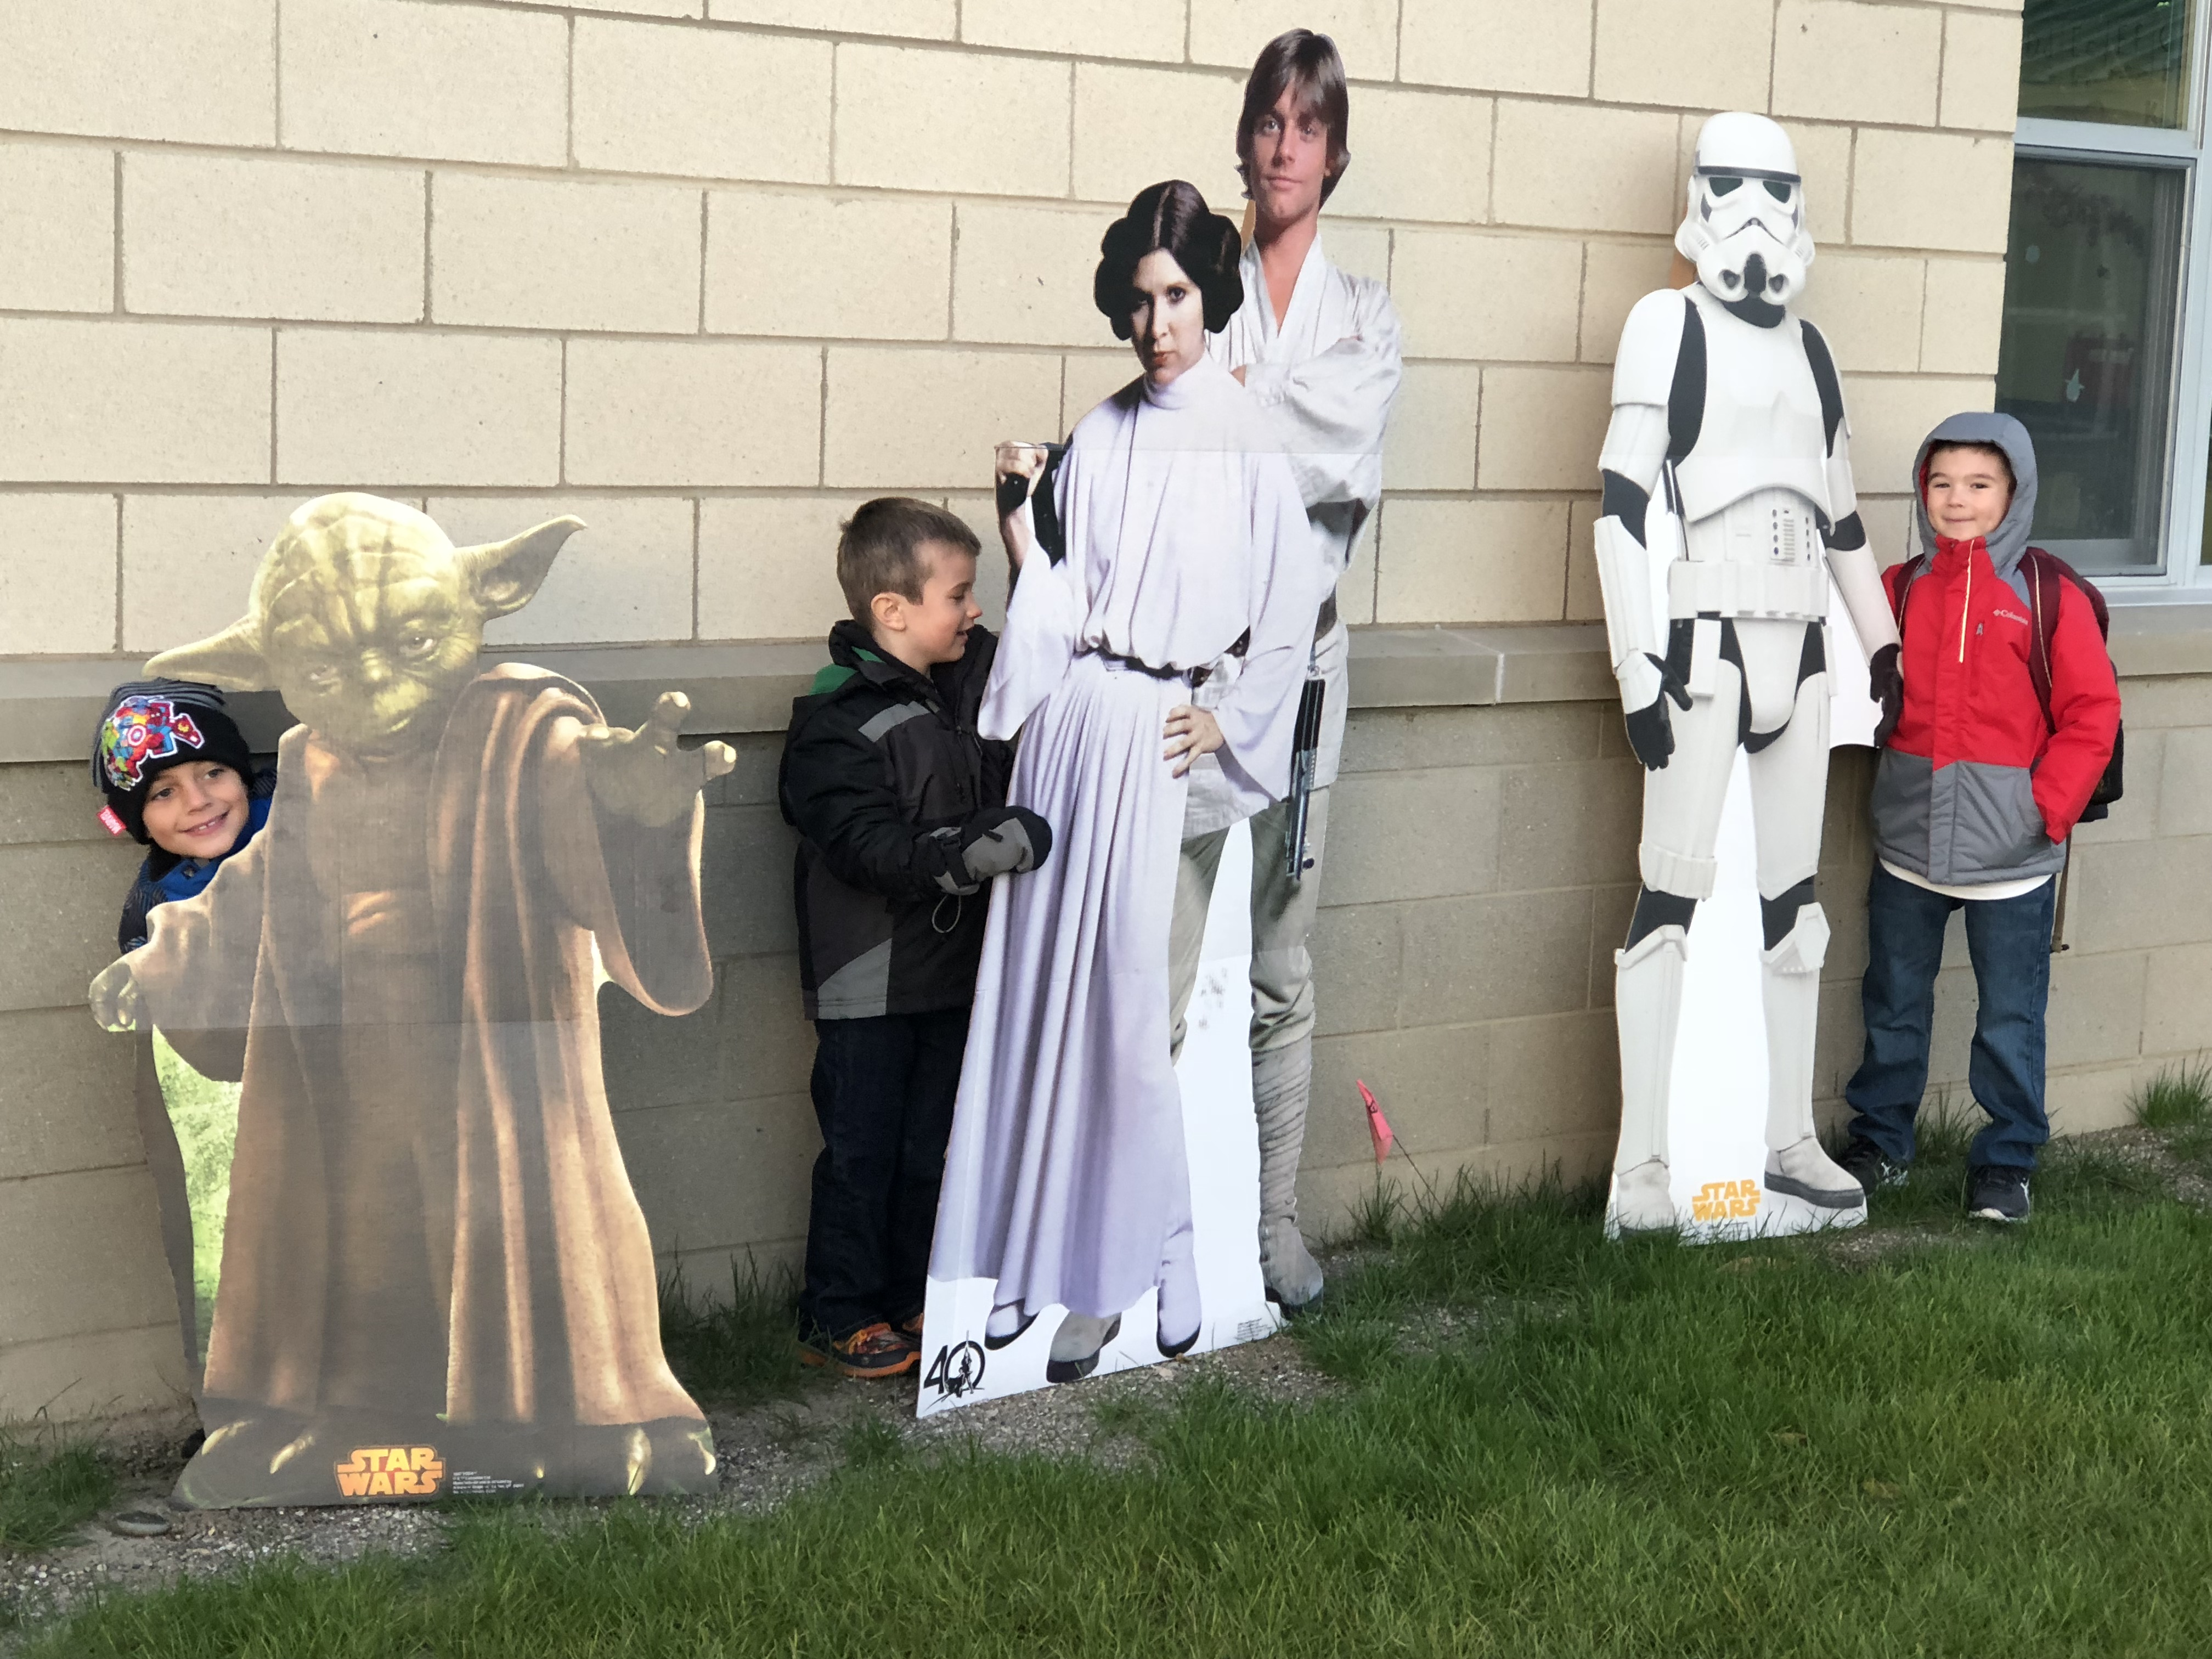 Kids standing with Star Wars characters